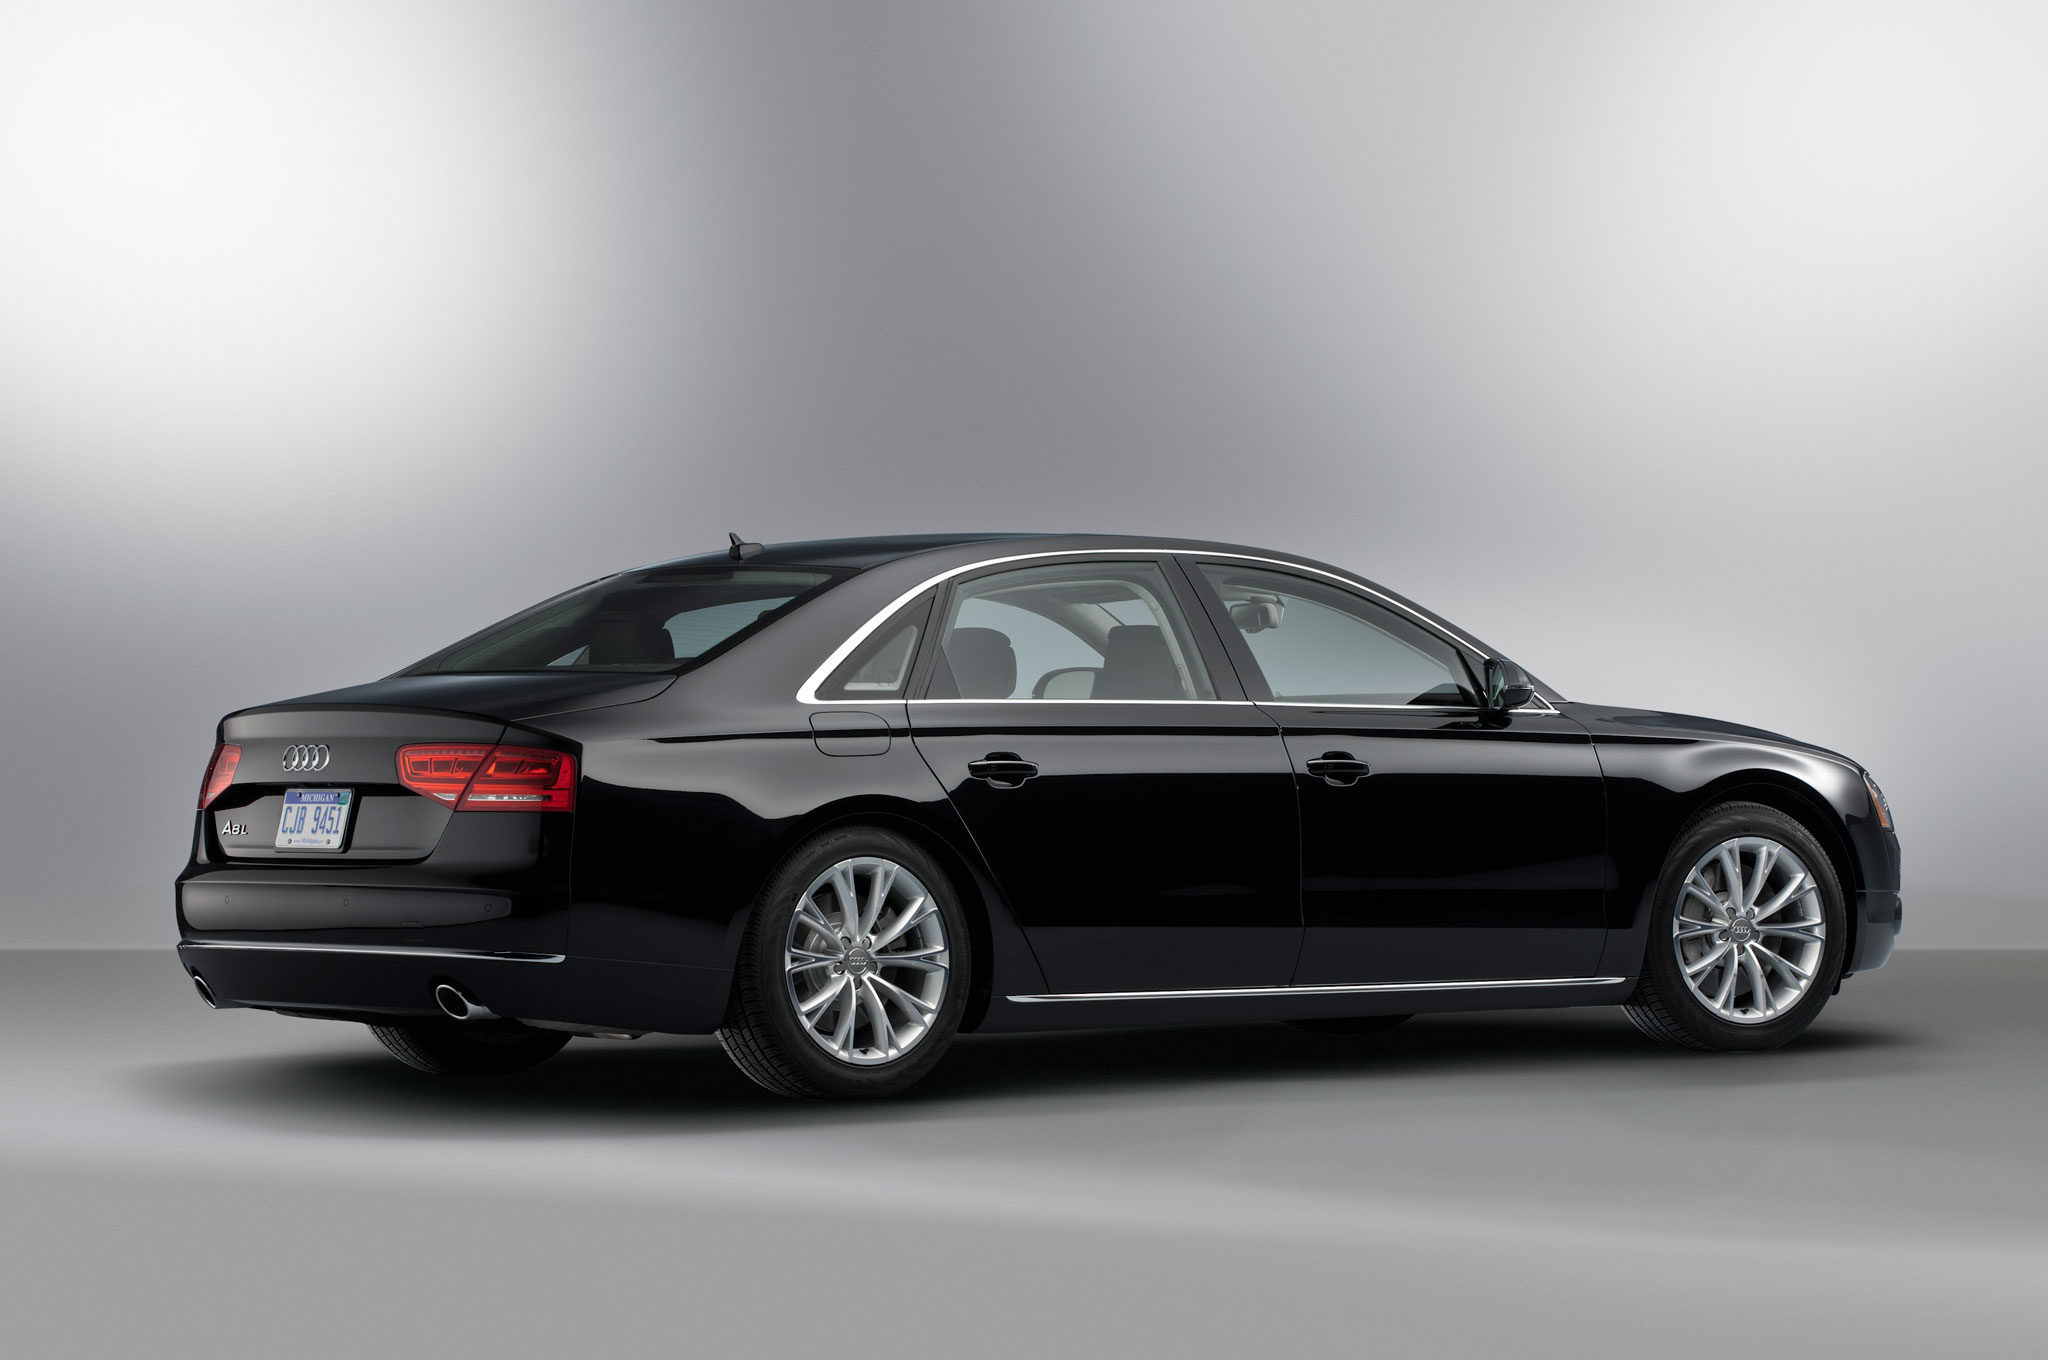 audi prices 2013 a8 3 0t at 73 095 a8 l w12 at 135 395. Black Bedroom Furniture Sets. Home Design Ideas